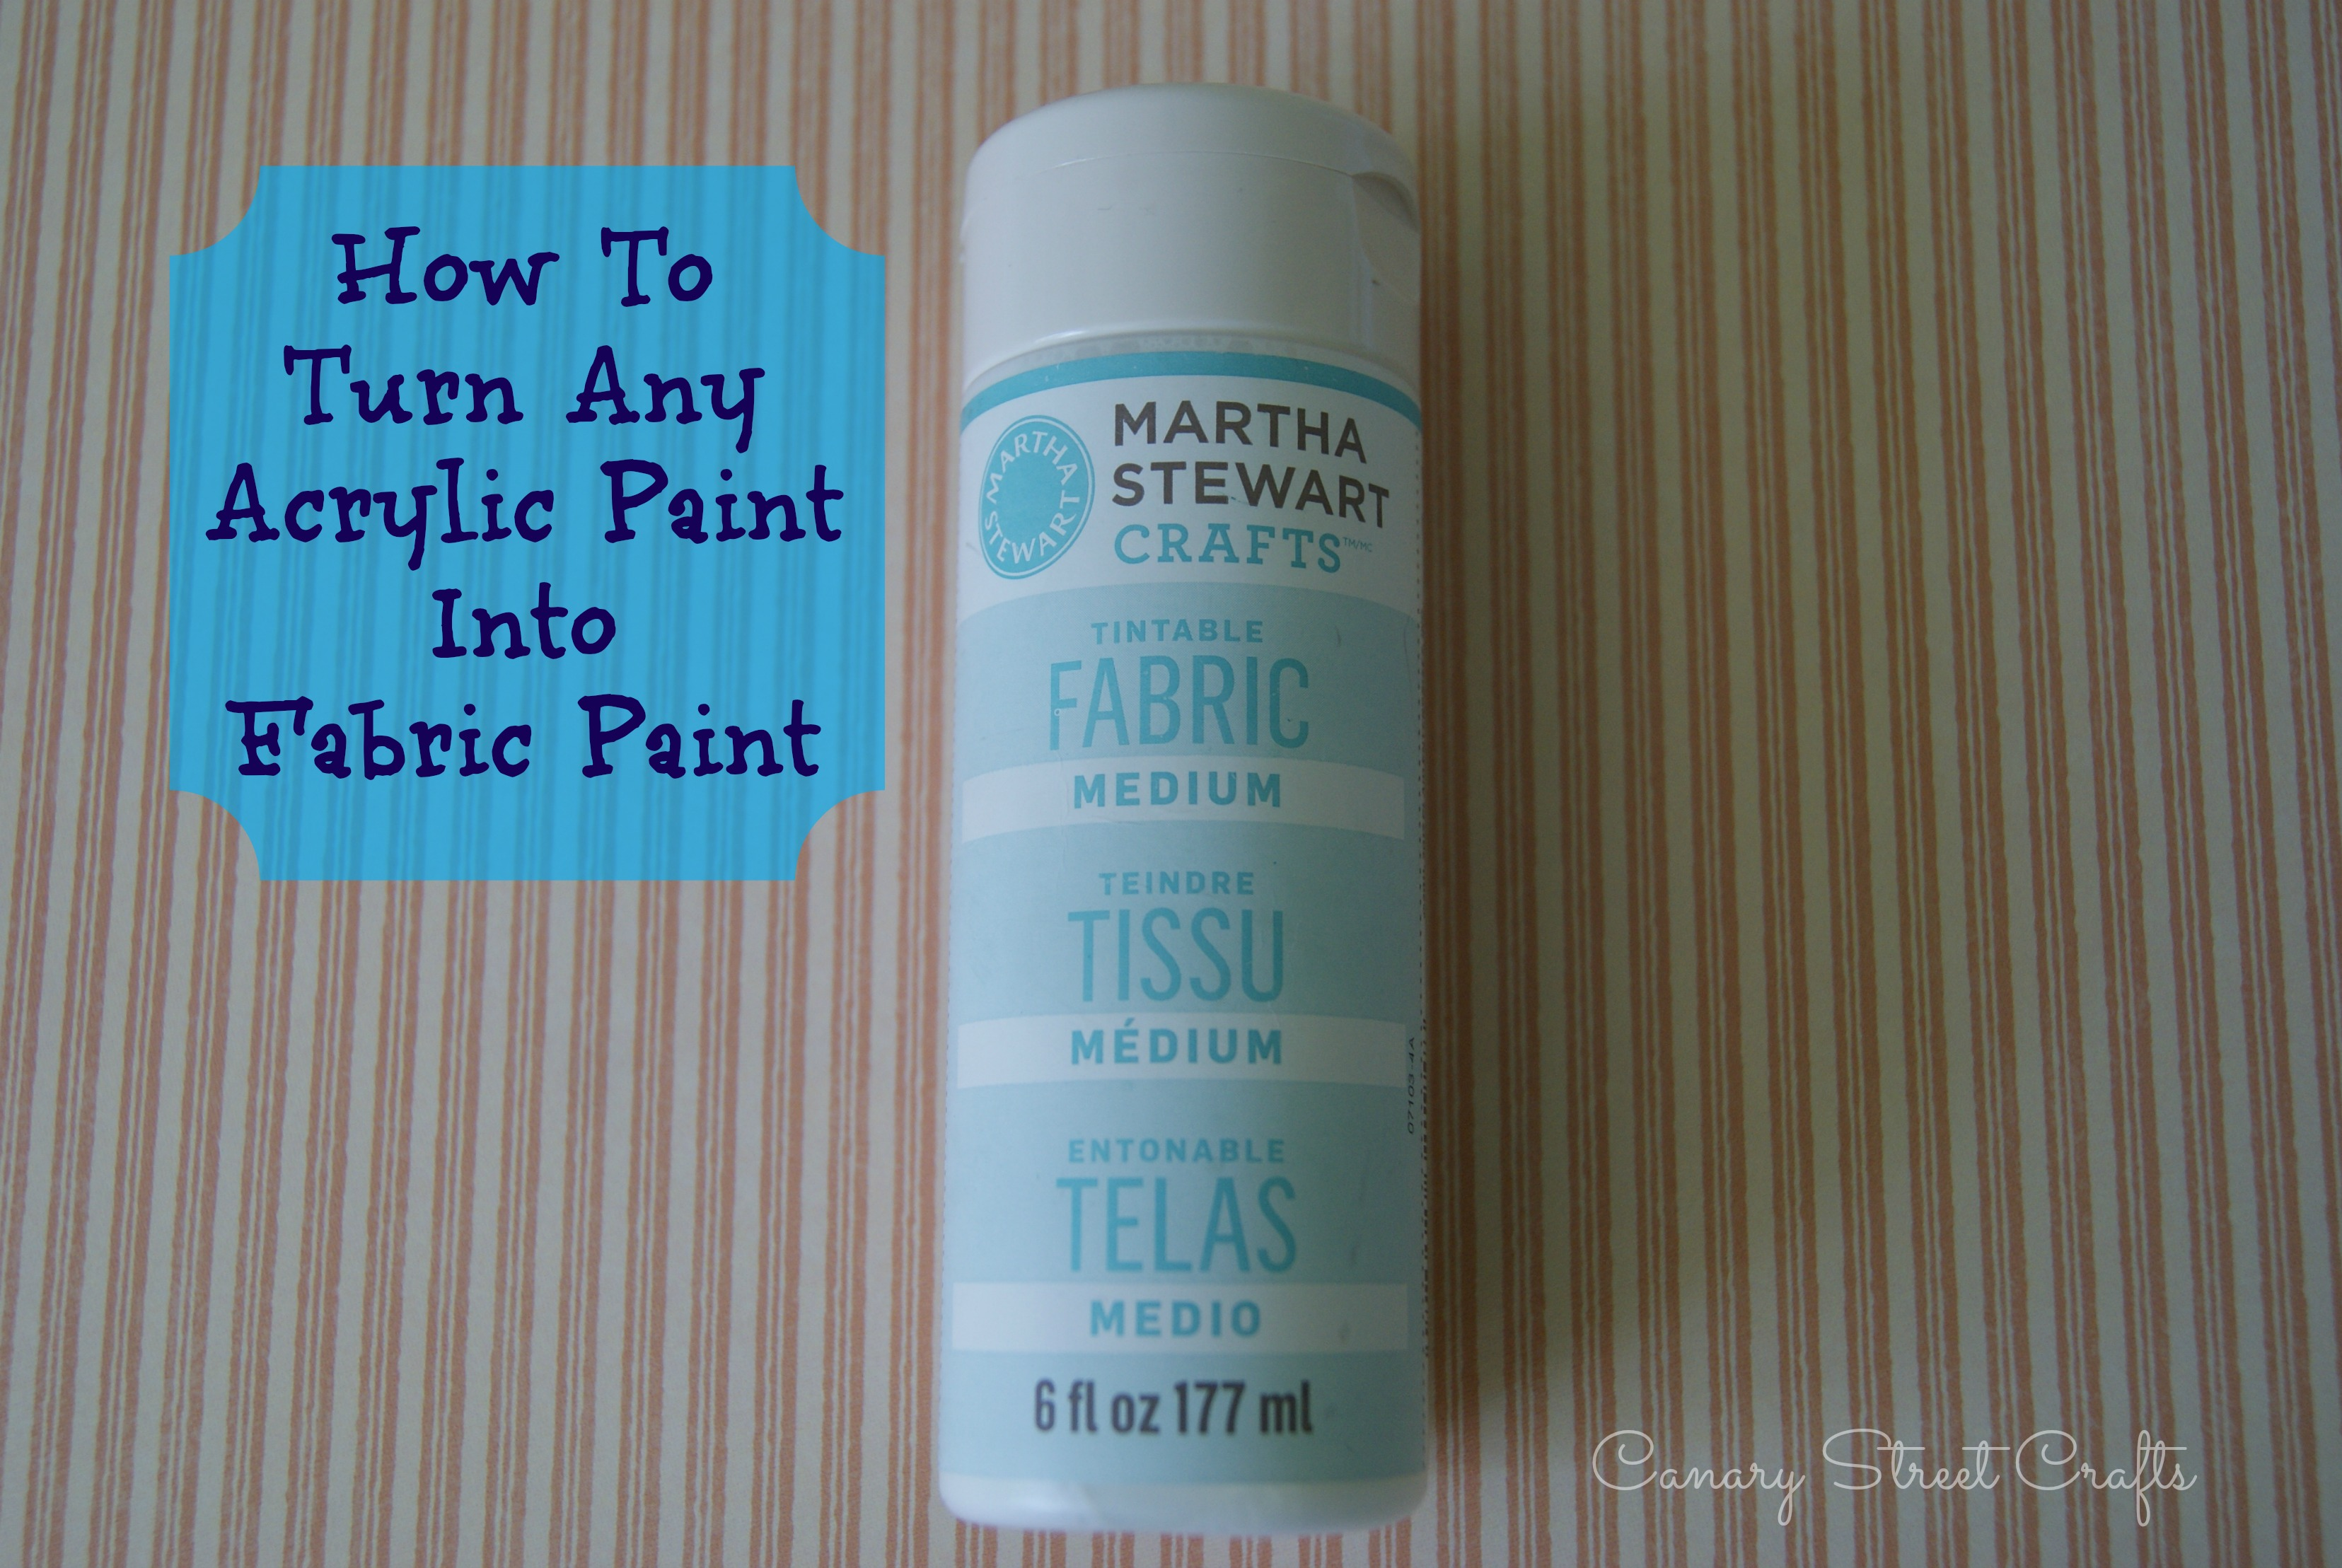 How To Turn Any Acrylic Paint Into Fabric Paint